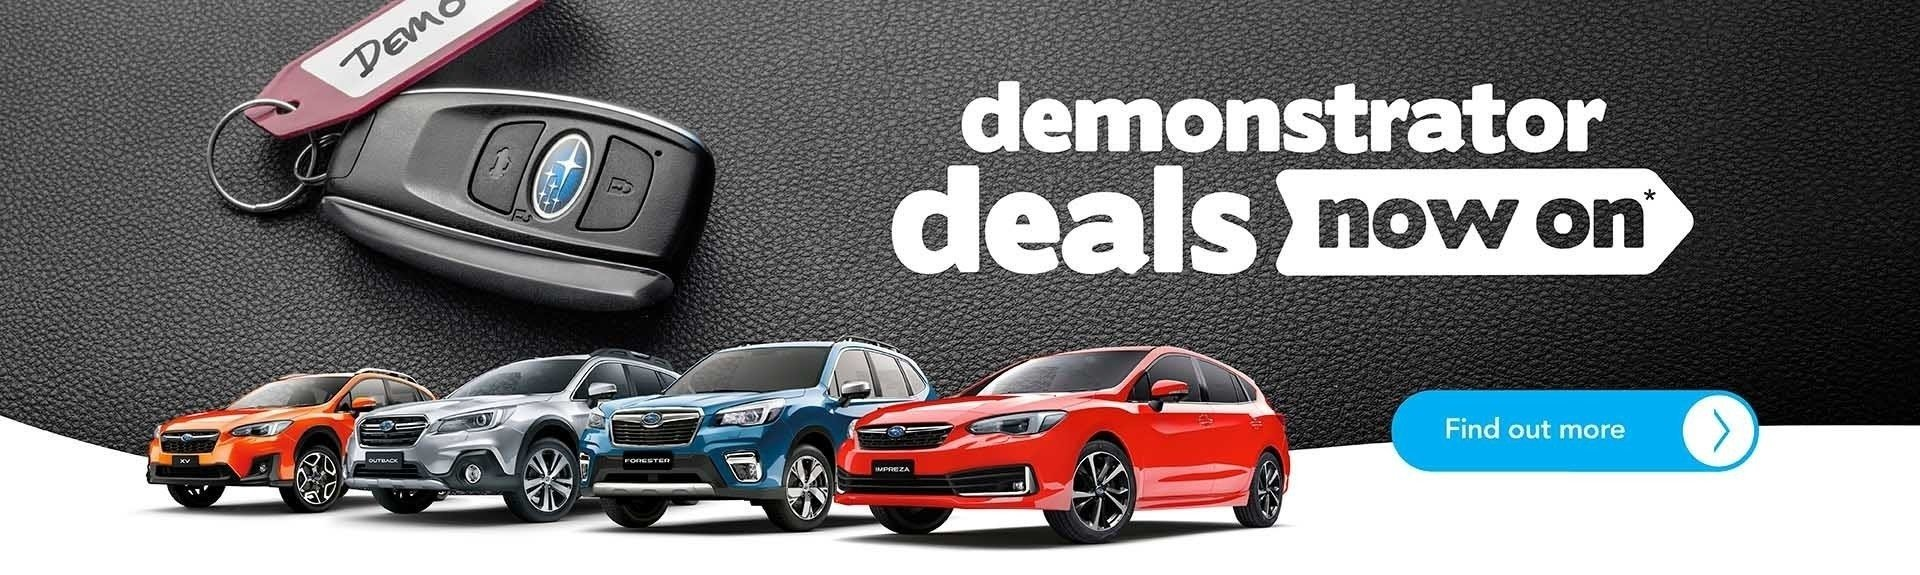 Subaru do Store Werribee Plaza - Demonstrator Sale on now